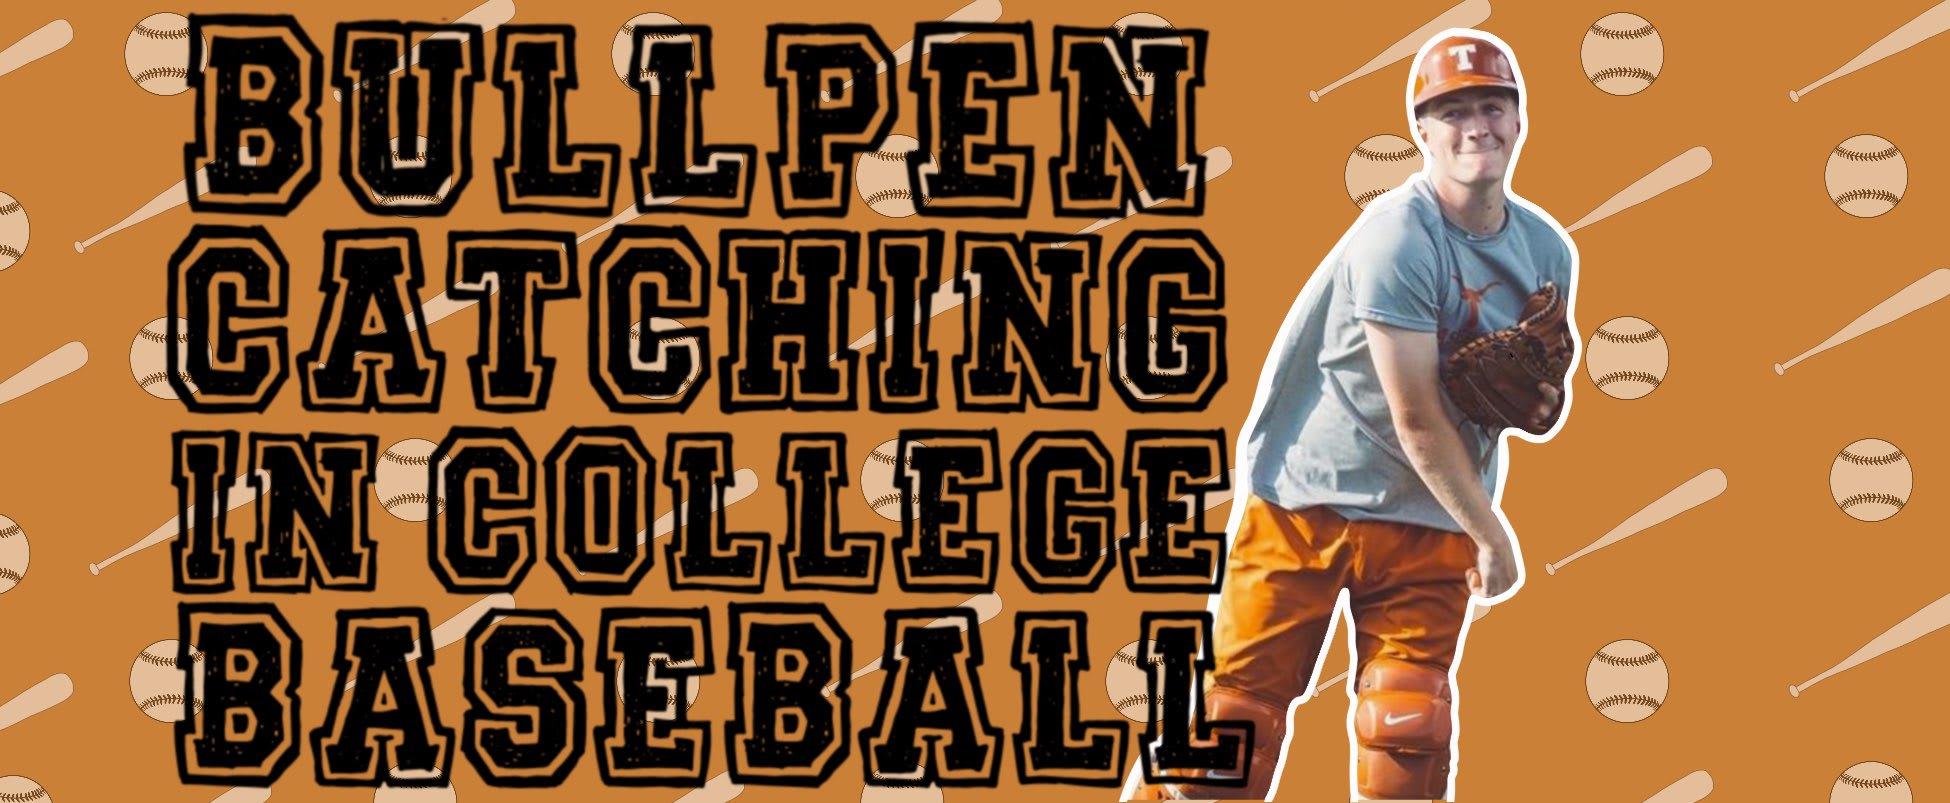 The Deeper Meaning Behind Bullpen Catching in College Baseball